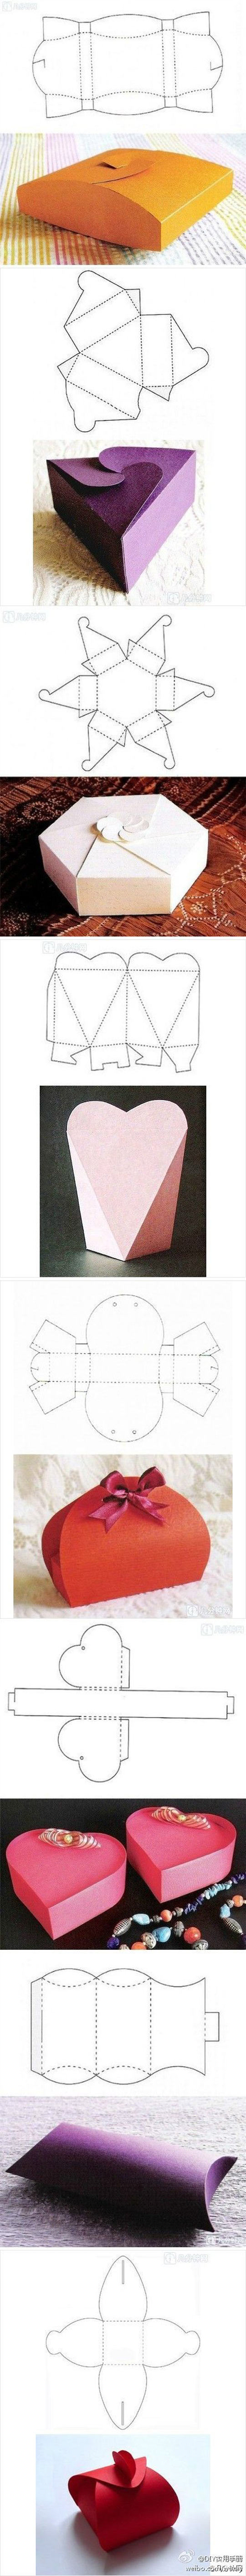 funny-DIY-boxes-instructions-heart1 (1)